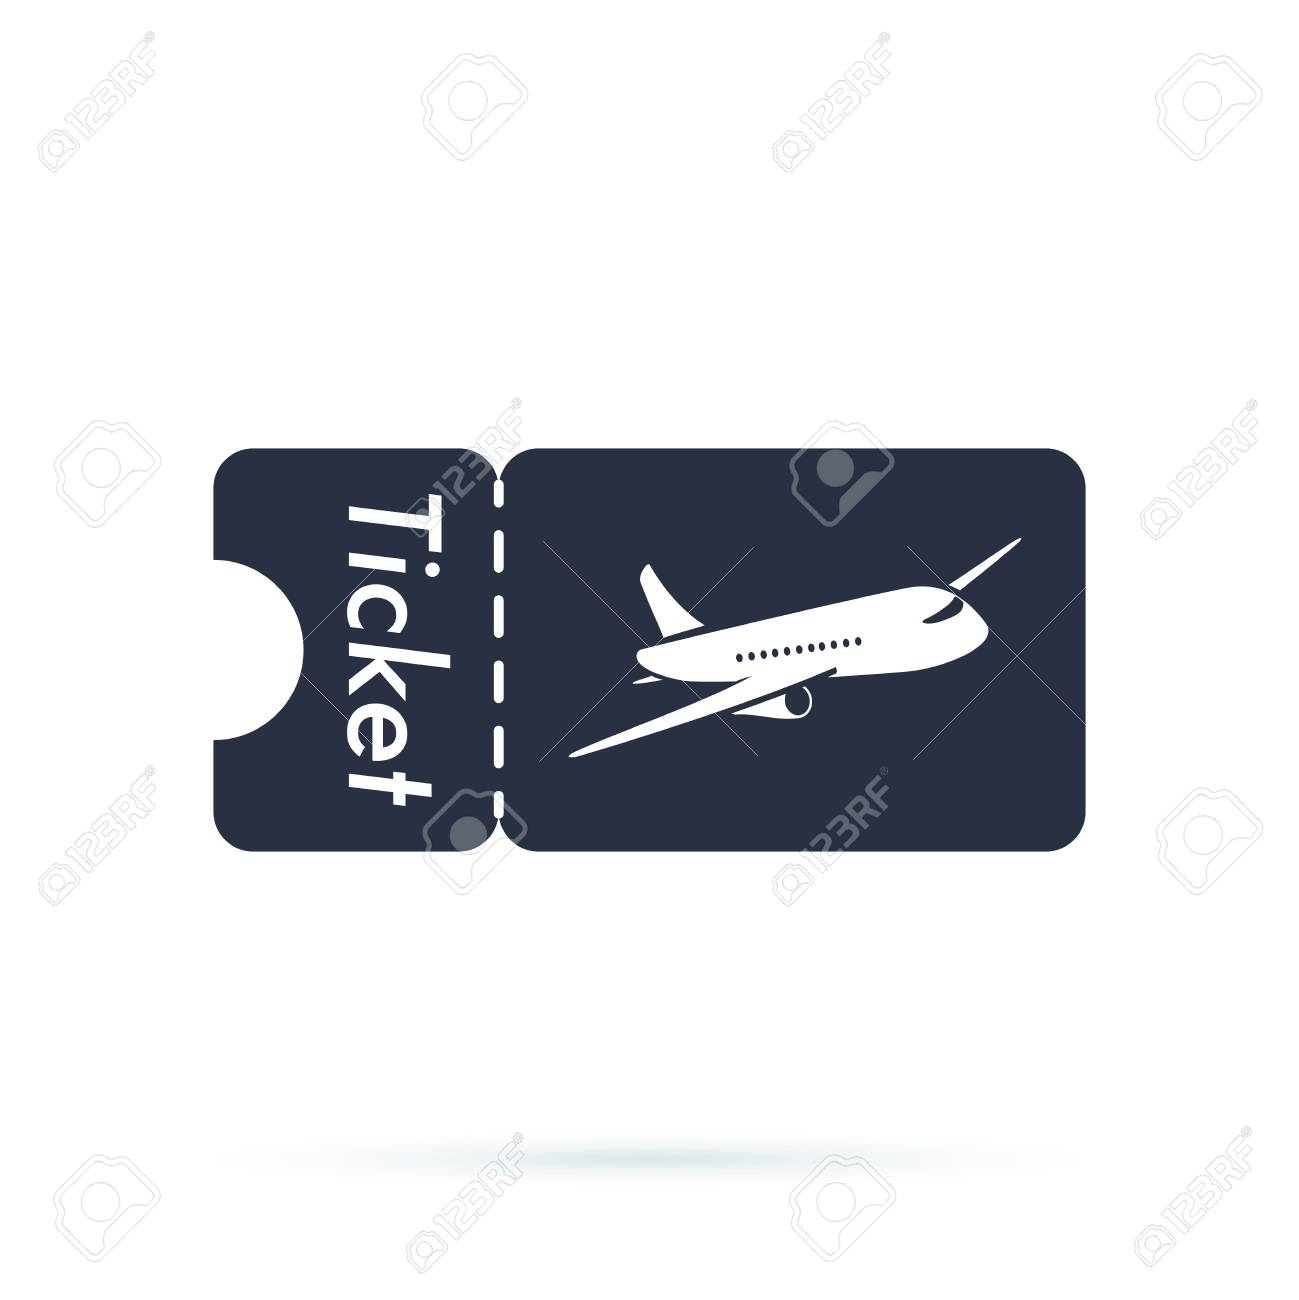 Tickets icon. Plane icon. Logo element. Web design icon with airplane template. Airlines travel concept business symbol. - 126506102